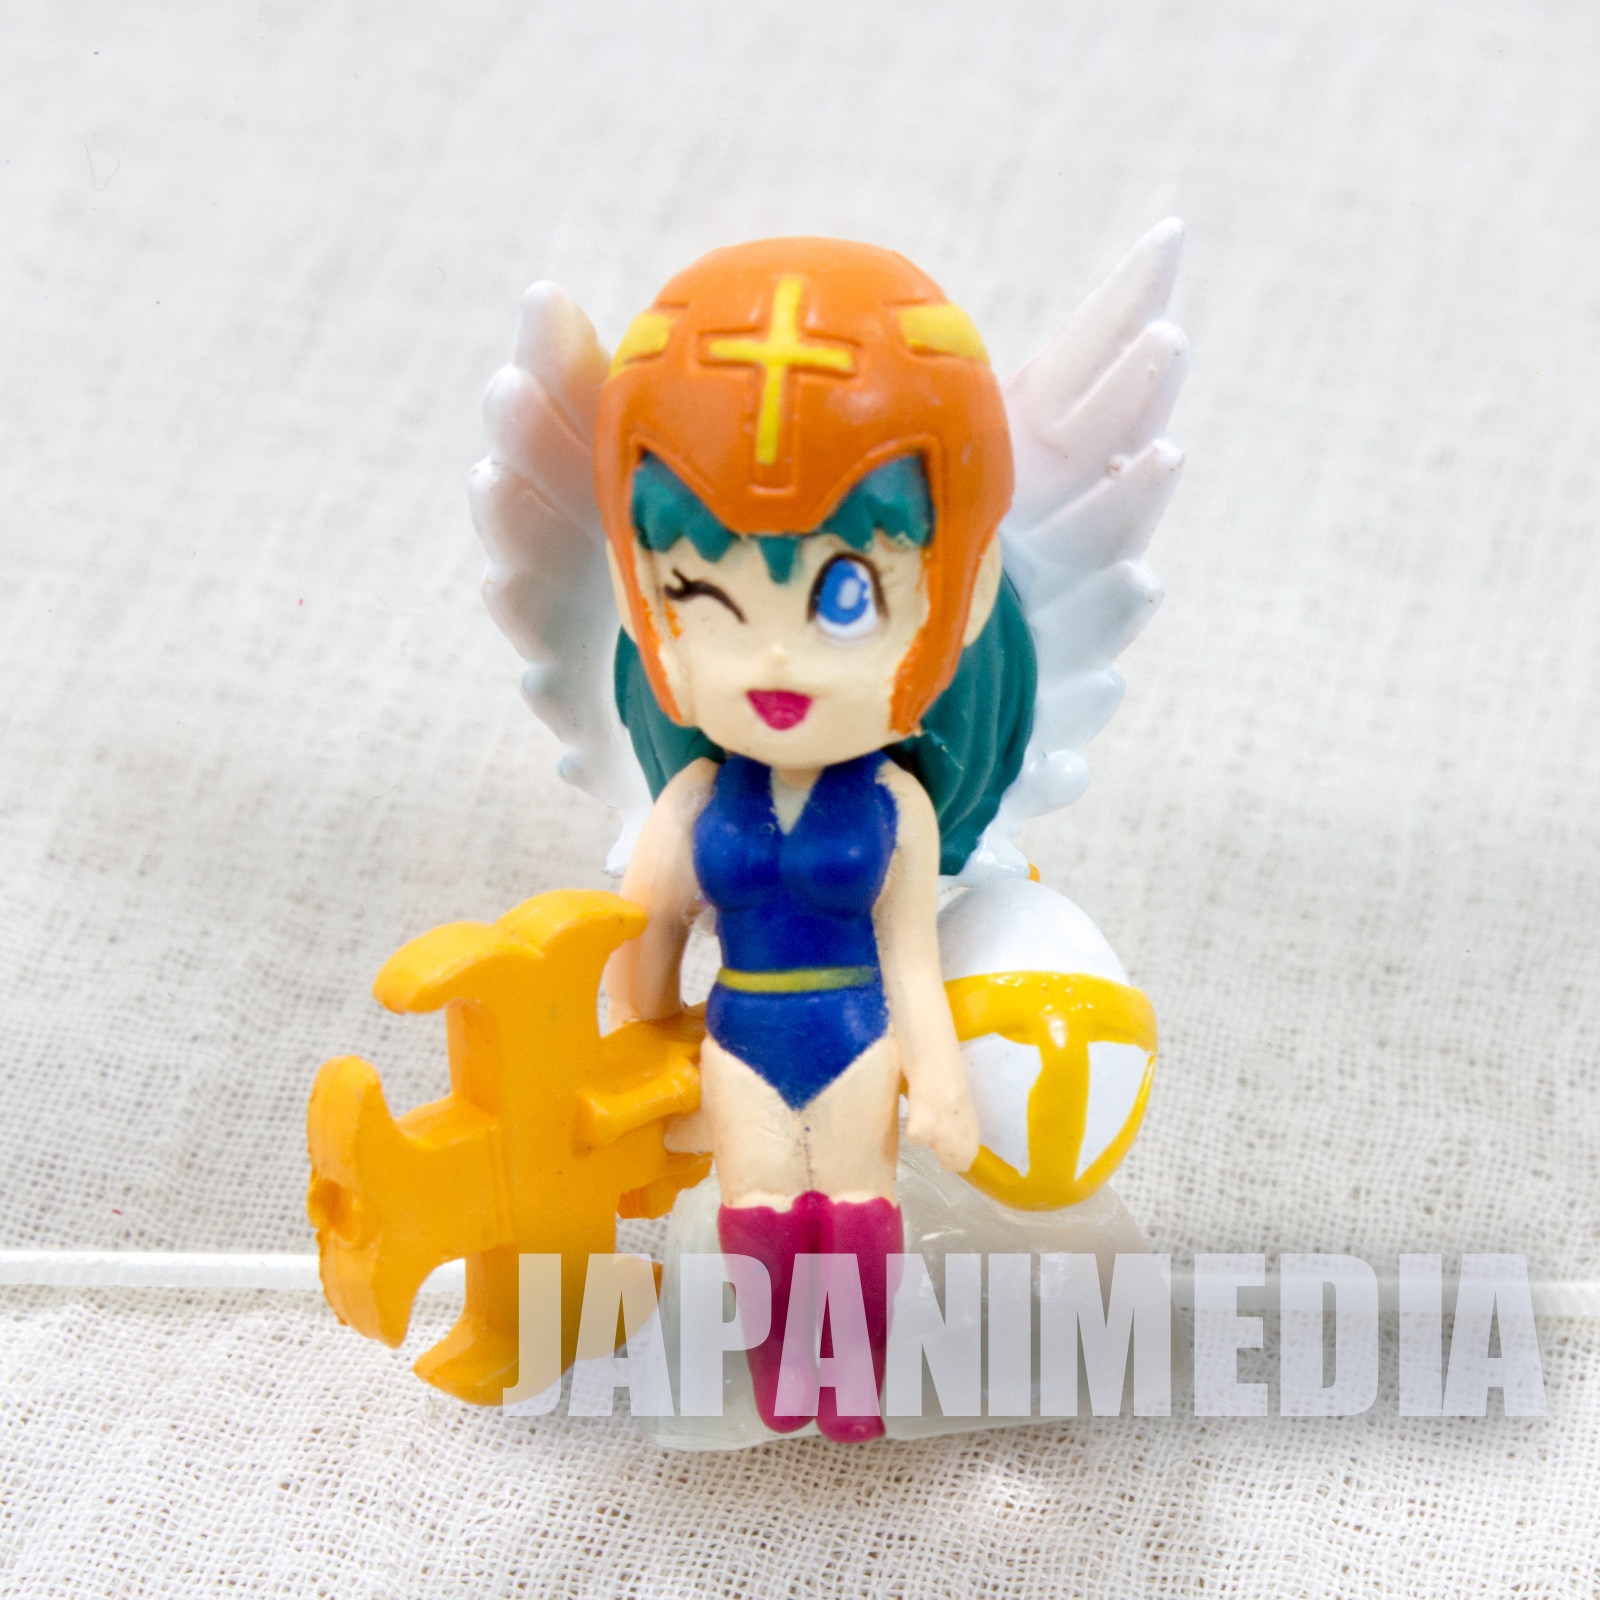 RARE! Bikkuriman Cross Angel Bikkuri Collection Mini Figure vol.2 Bandai JAPAN